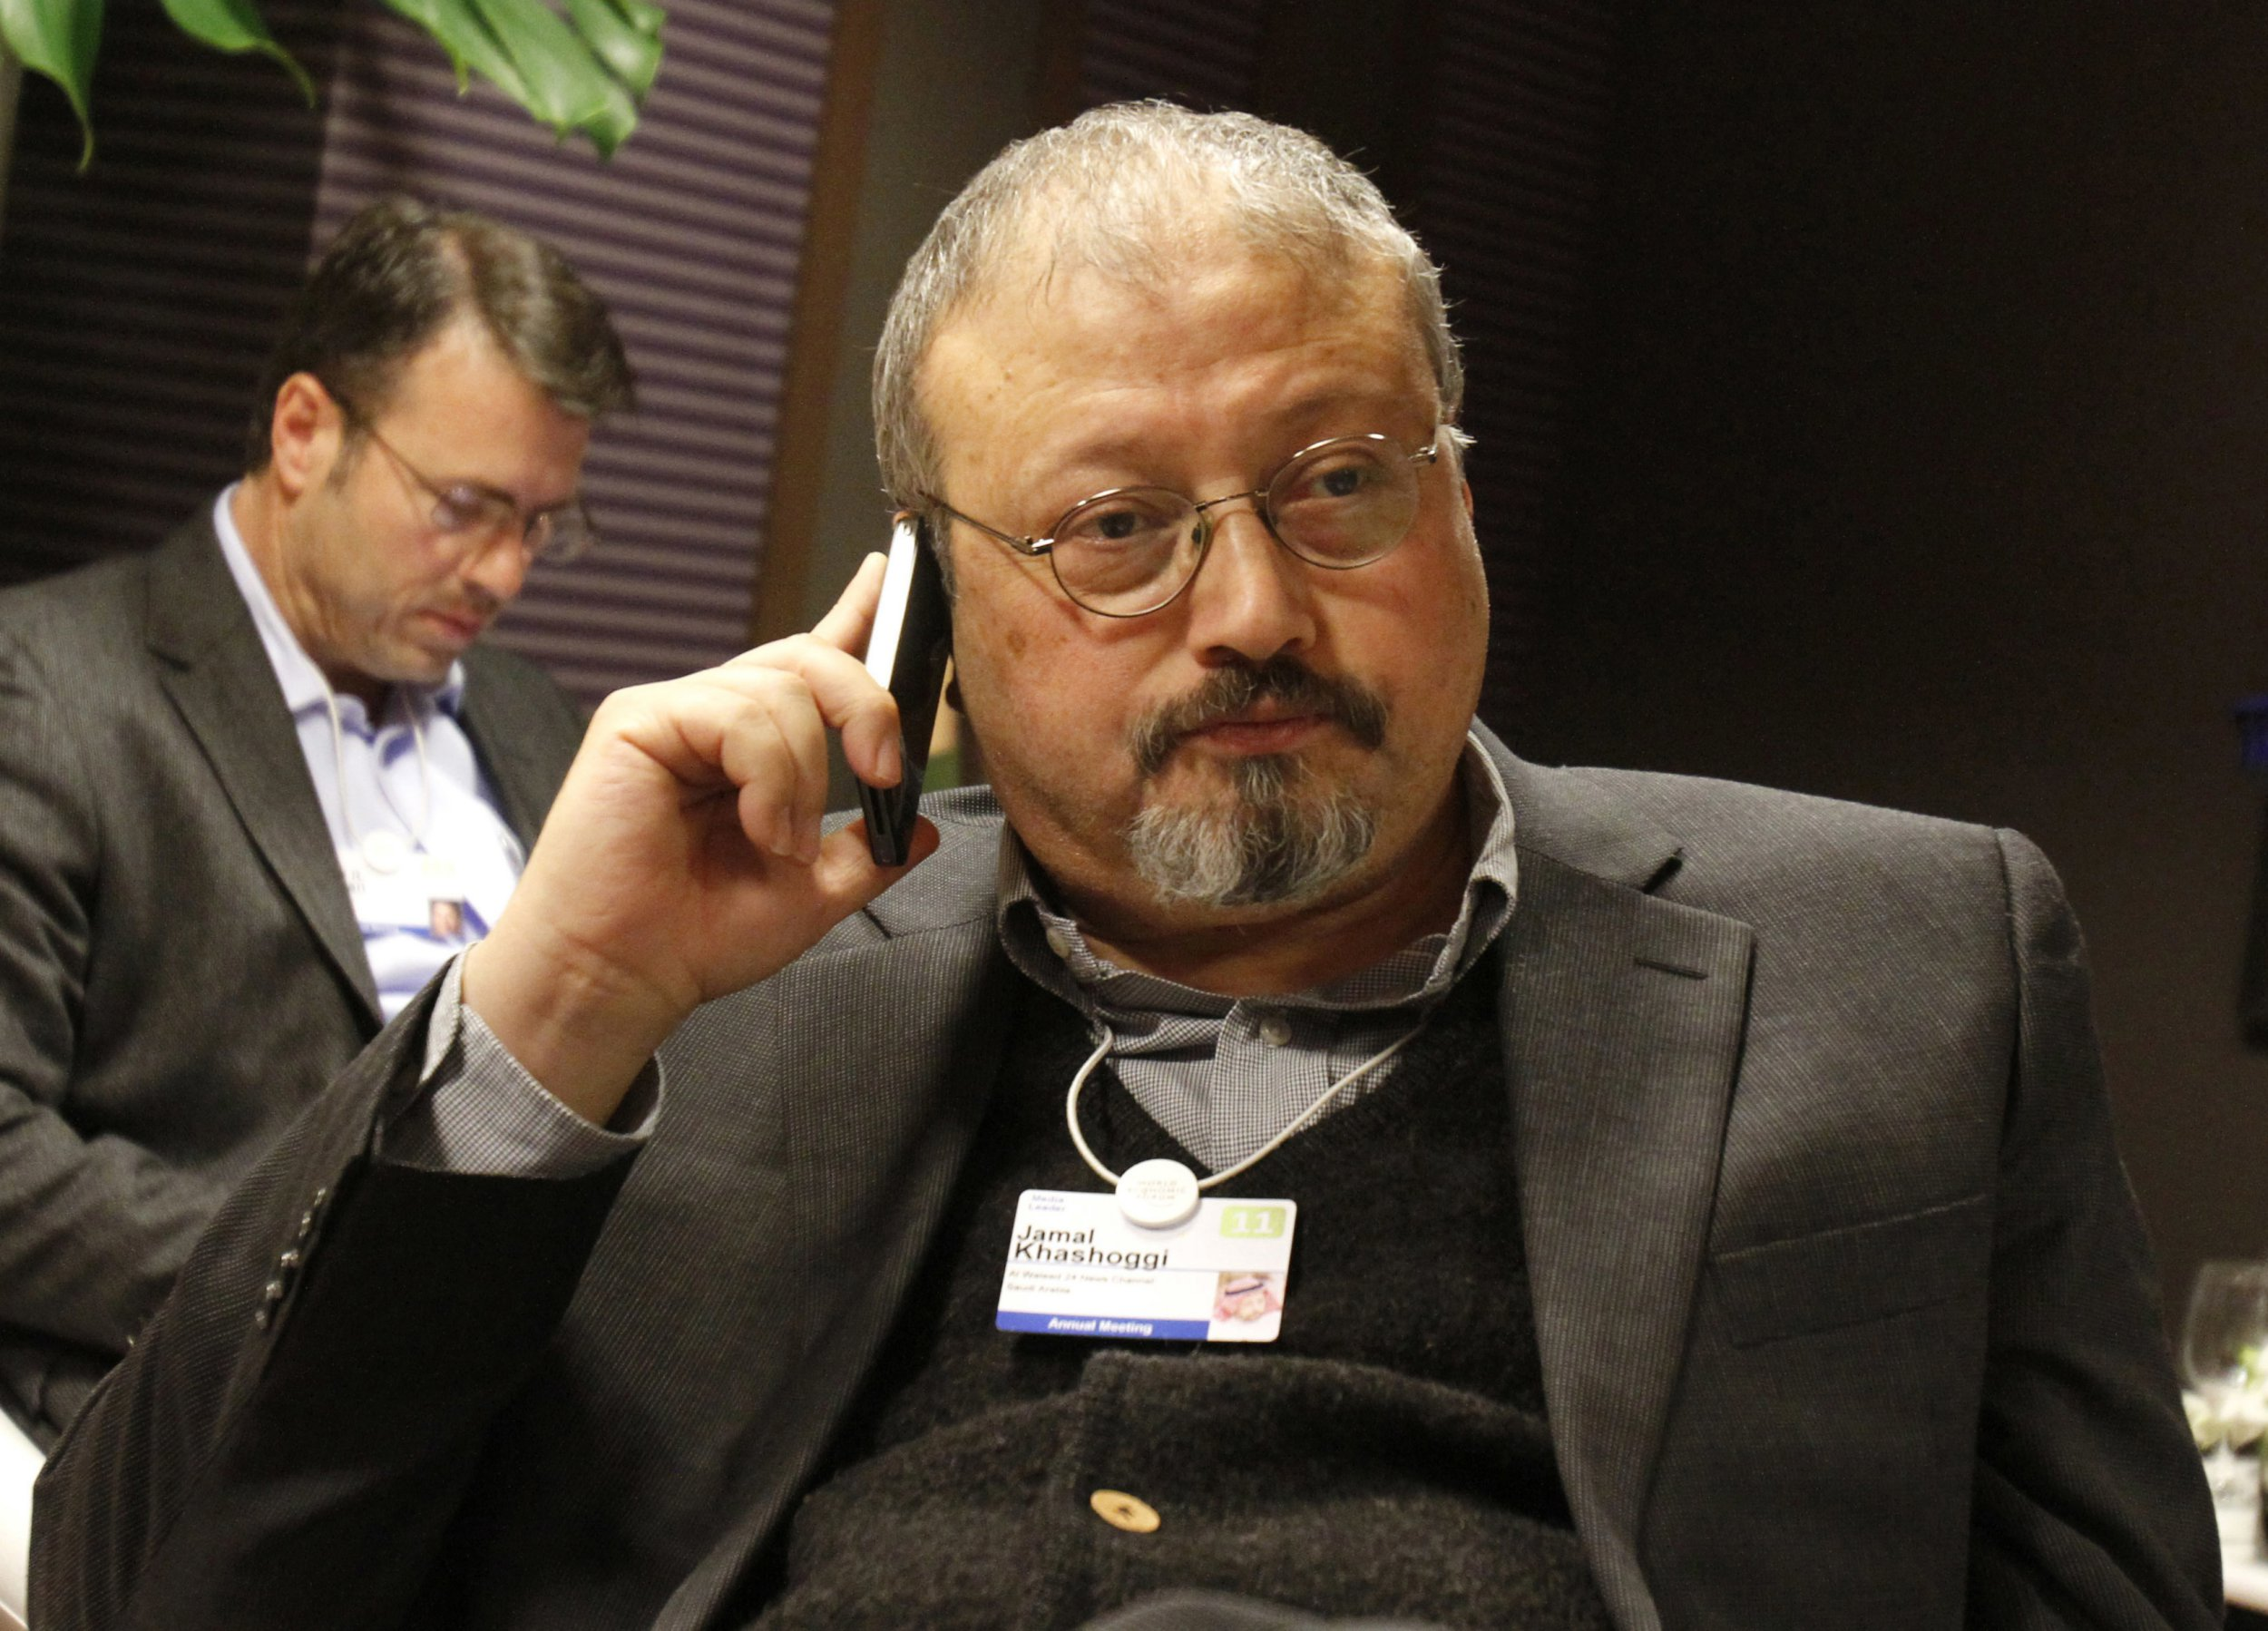 FILE - In this Jan. 29, 2011, file photo, Saudi Arabian journalist Jamal Khashoggi speaks on his cellphone at the World Economic Forum in Davos, Switzerland. In recent months, the Trump administration has repeatedly put off the release of its long-awaited Mideast peace plan. Now, the death of Saudi journalist Jamal Khashoggi at the hands of Saudi agents may put the plan into a deep freeze. (AP Photo/Virginia Mayo, File)